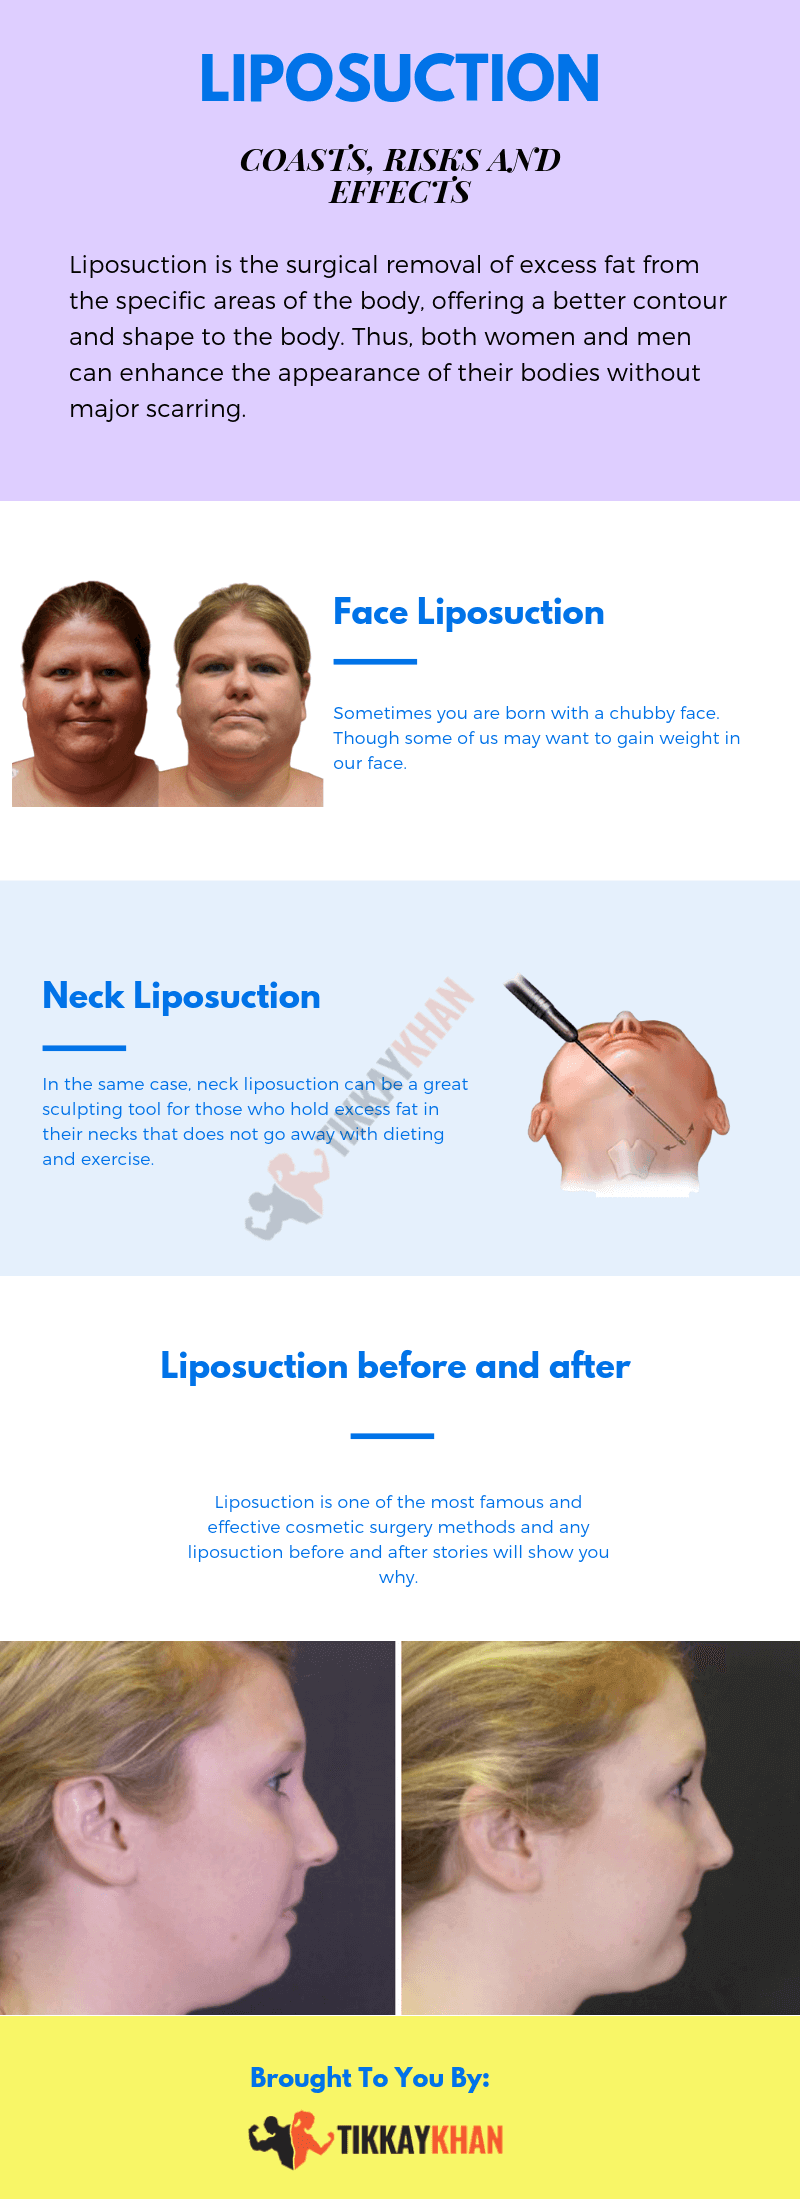 Liposuction Infographic by TikkayKhan